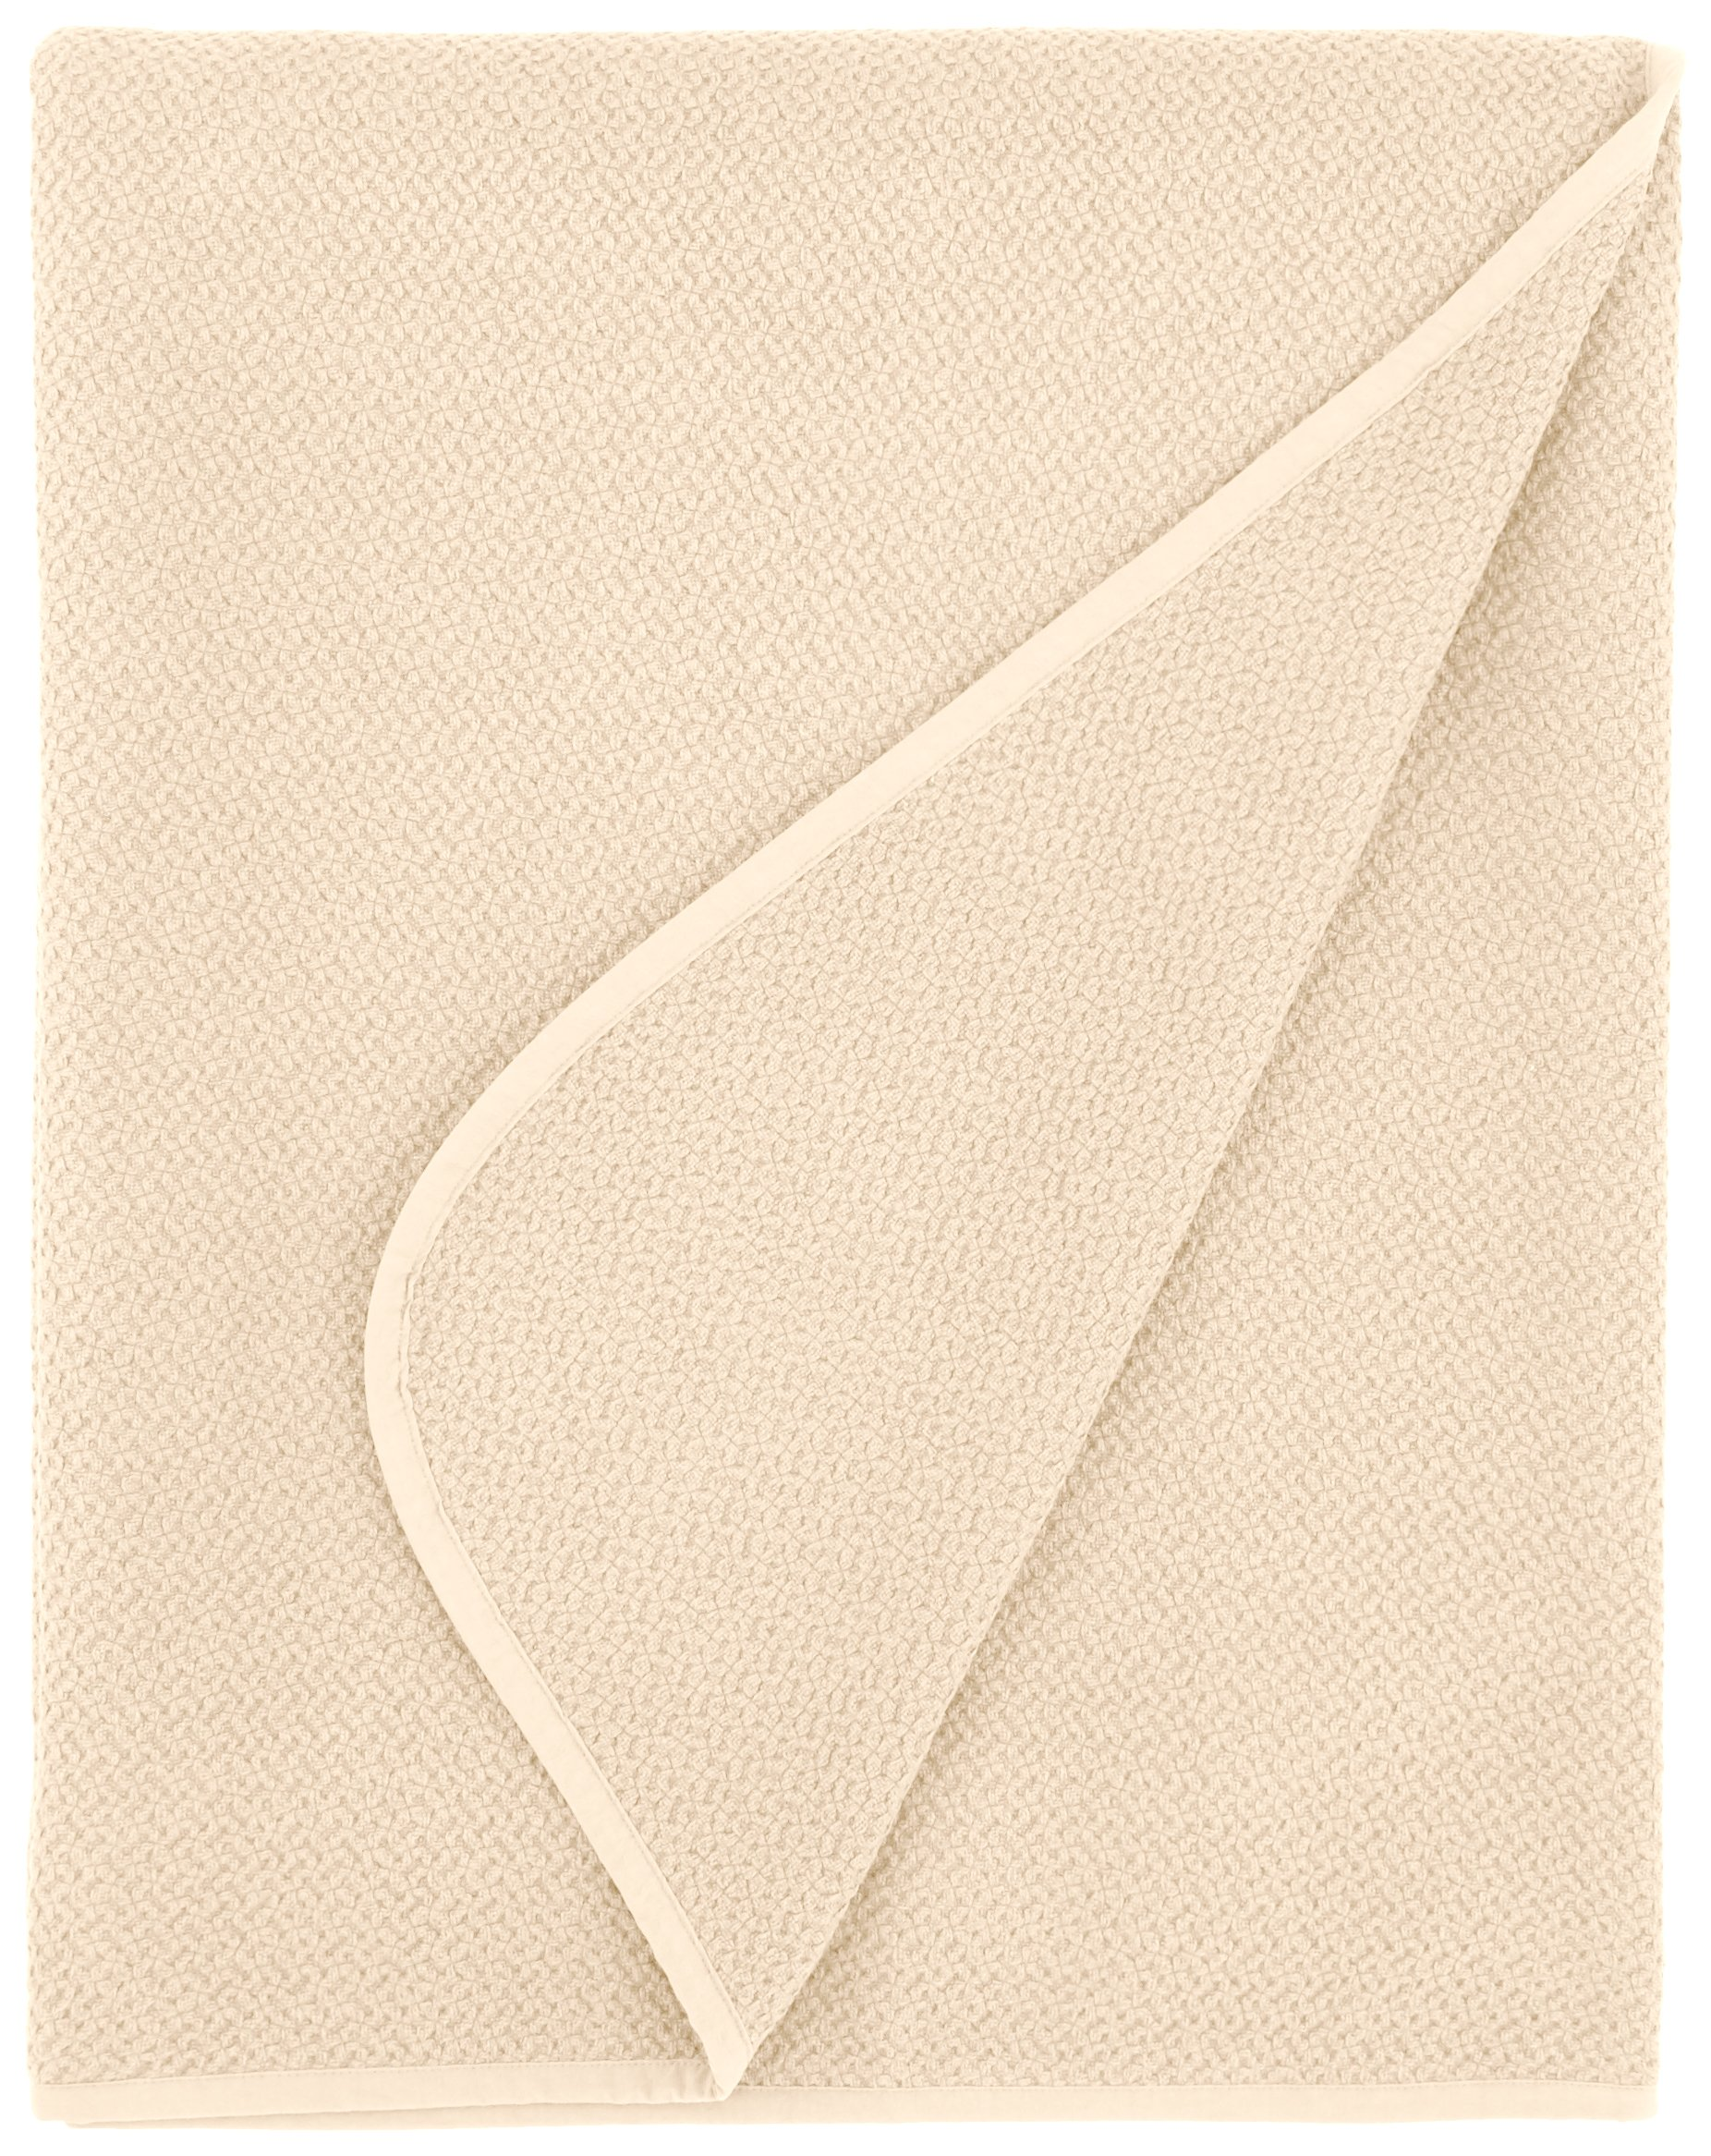 Coyuchi Honeycomb Organic Blanket, Full/Queen, Ivory